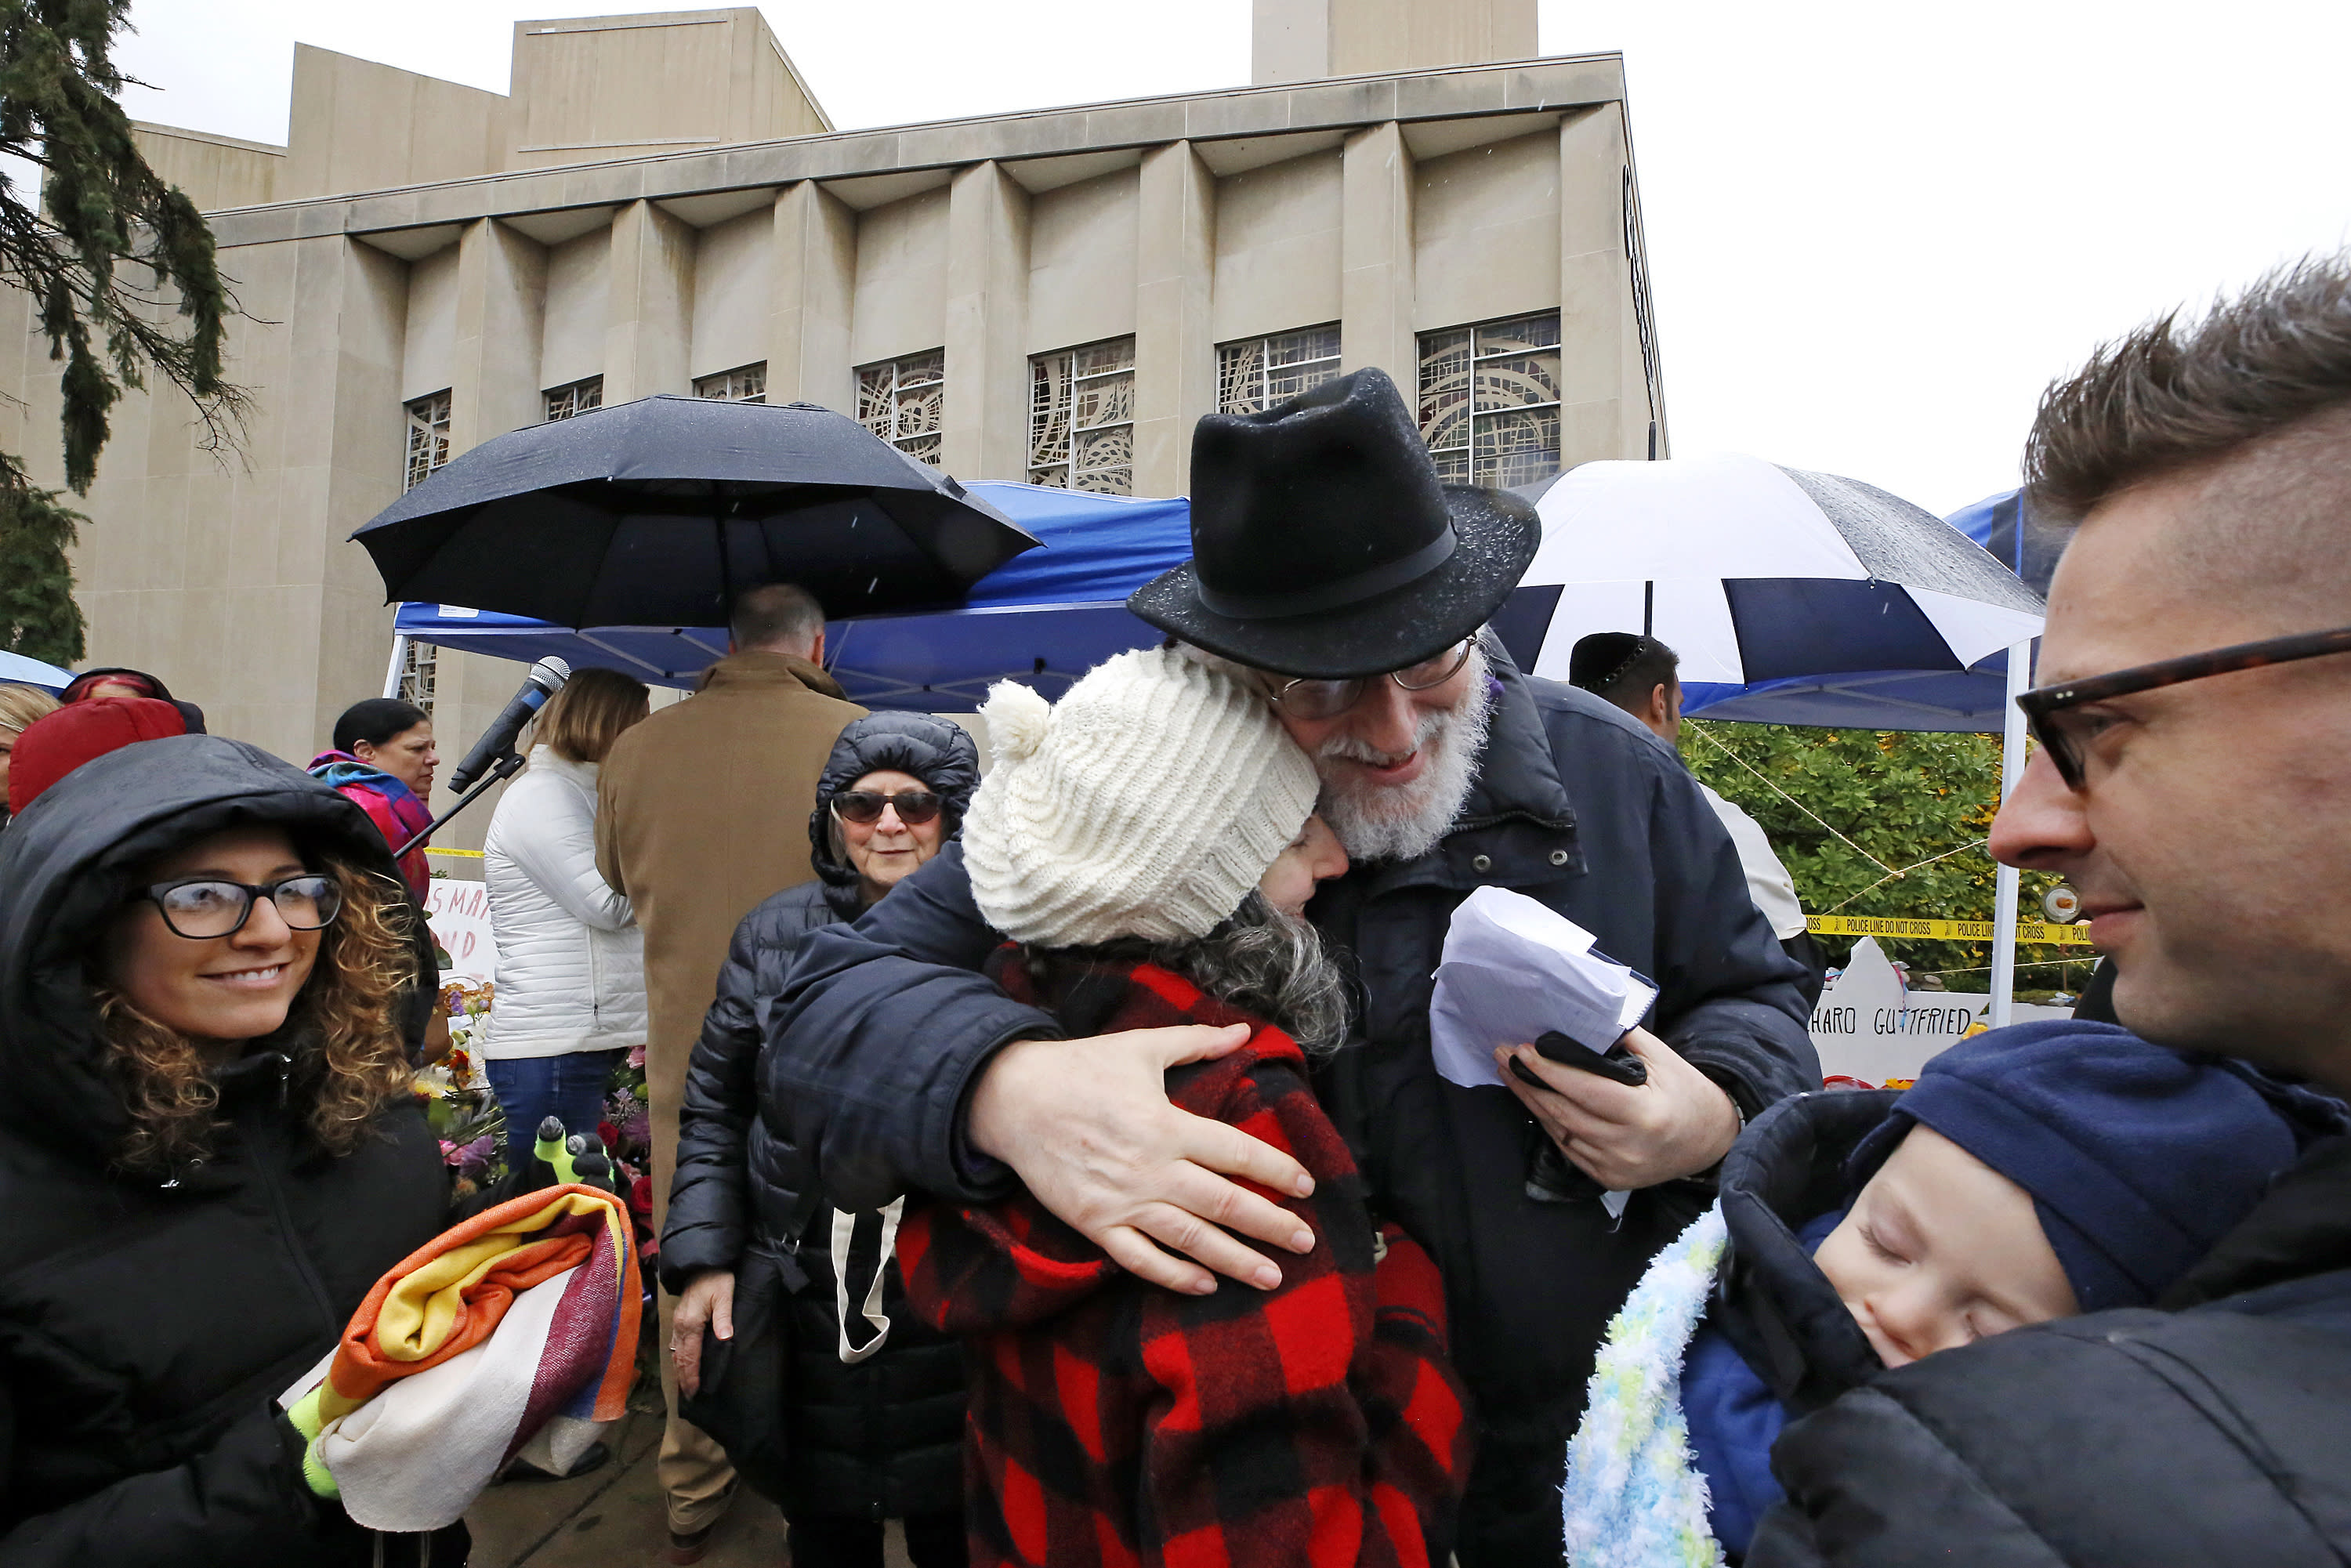 Rabbi Chuck Diamond, center, a former Rabbi at the Tree of Life Synagogue, hugs a woman after leading a Shabbat service outside the Tree of Life Synagogue, Saturday, Nov. 3, 2018 in Pittsburgh. Last Saturday, 11 people were killed and six wounded when their worship was interrupted by a gunman's bullets. (AP Photo/Gene J. Puskar)